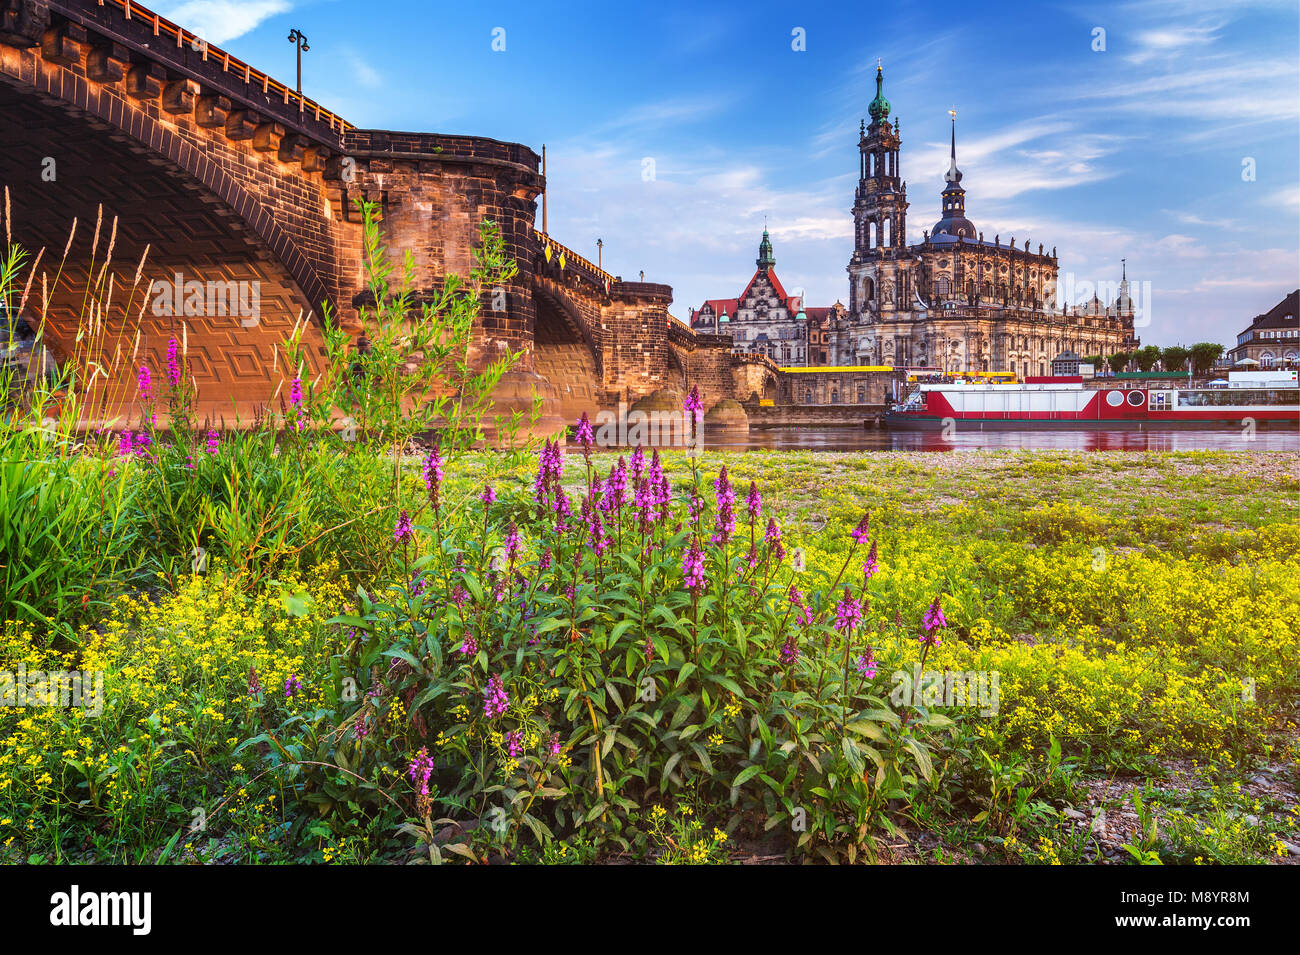 Scenic summer view of the Old Town architecture with Elbe river embankment in Dresden, Saxony, Germany - Stock Image